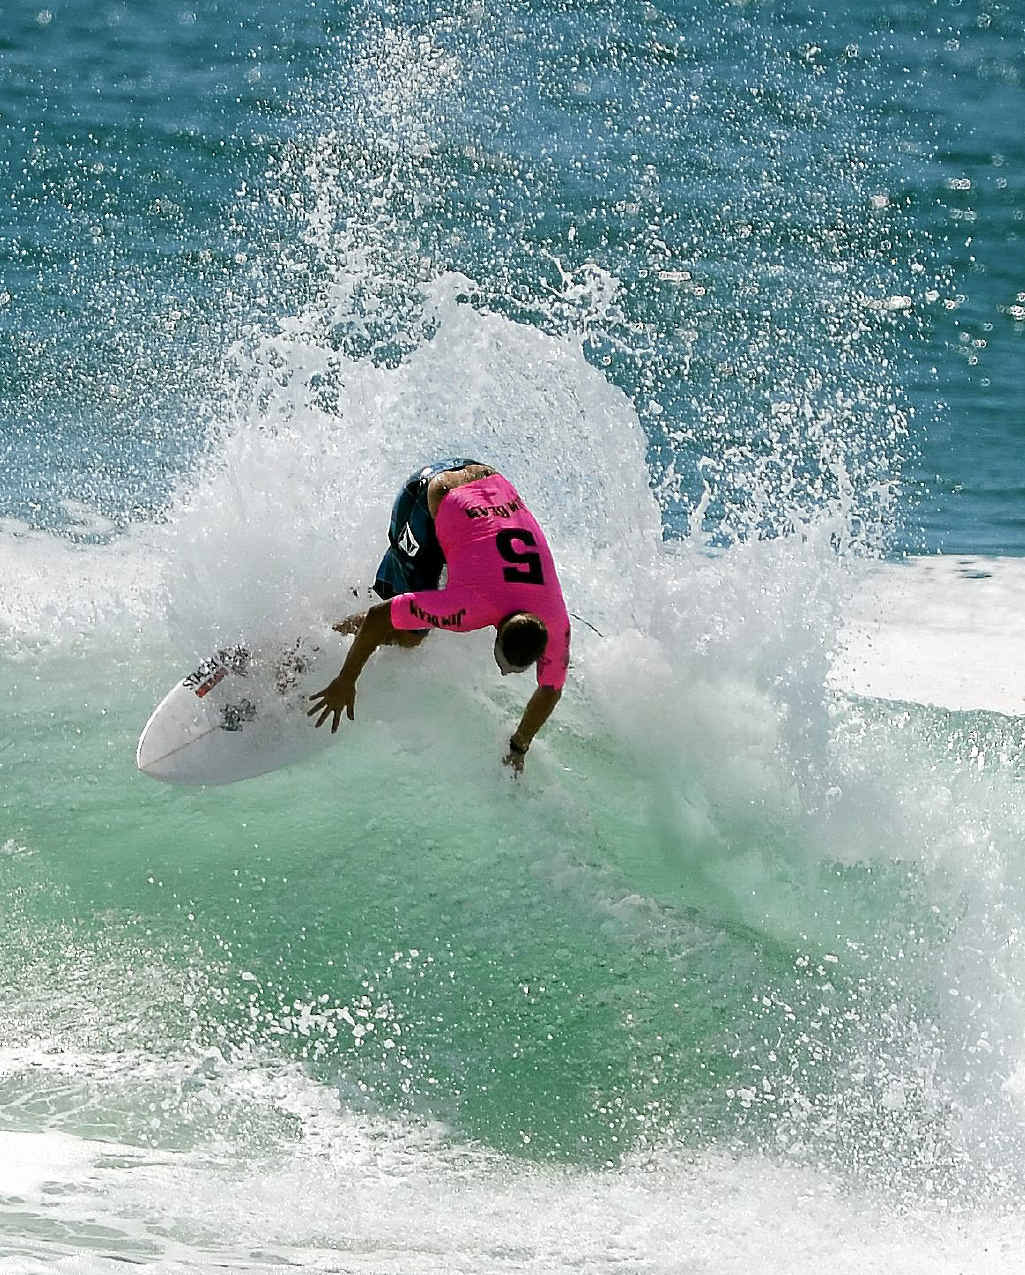 ALL GOOD: Dylan Johnson's backhand re-entry in The Jim Beam Surftag qualifier, held at North Wall, Ballina.